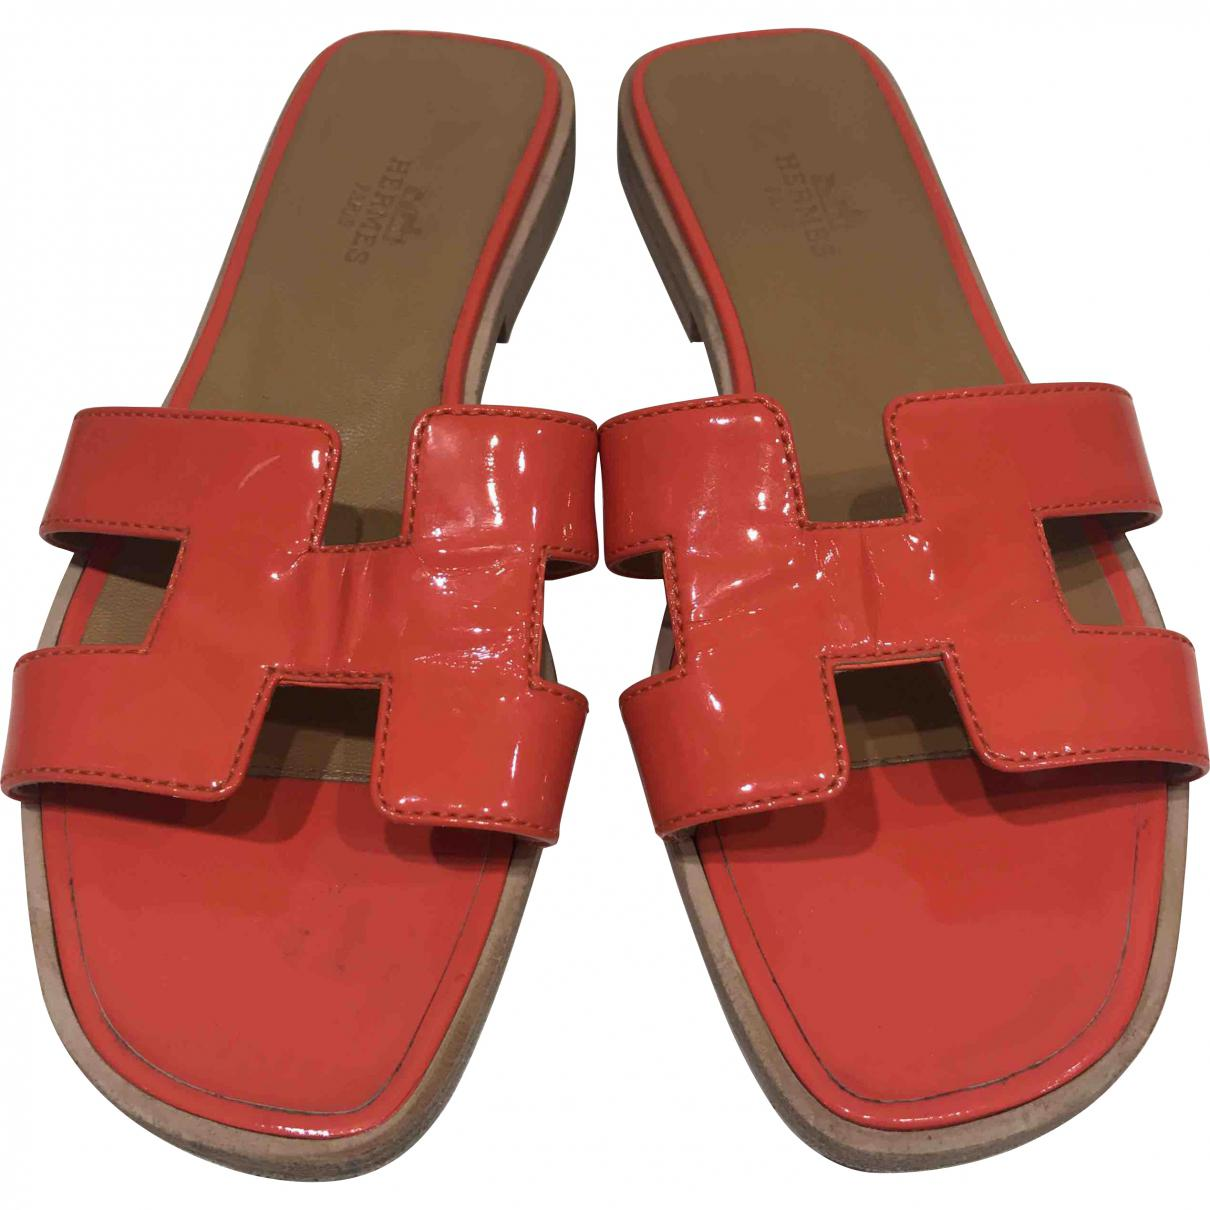 Pre-owned - Patent leather sandals Herm Free Shipping Nicekicks Hot Outlet Factory Outlet z8kEsOpZC